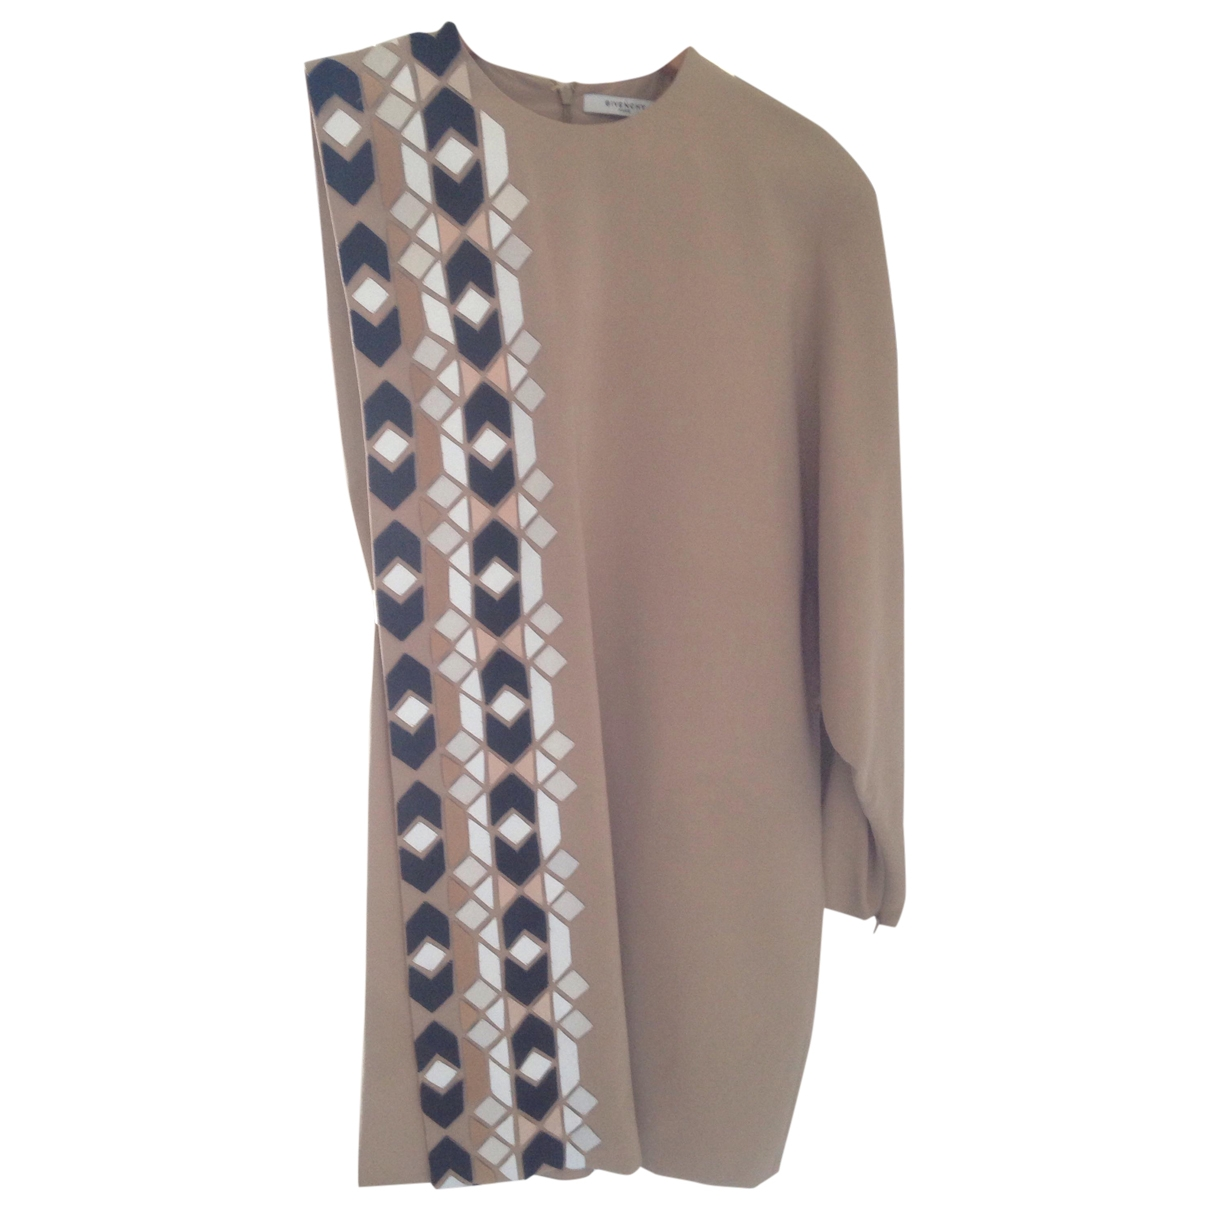 Givenchy \N Beige  top for Women 40 IT